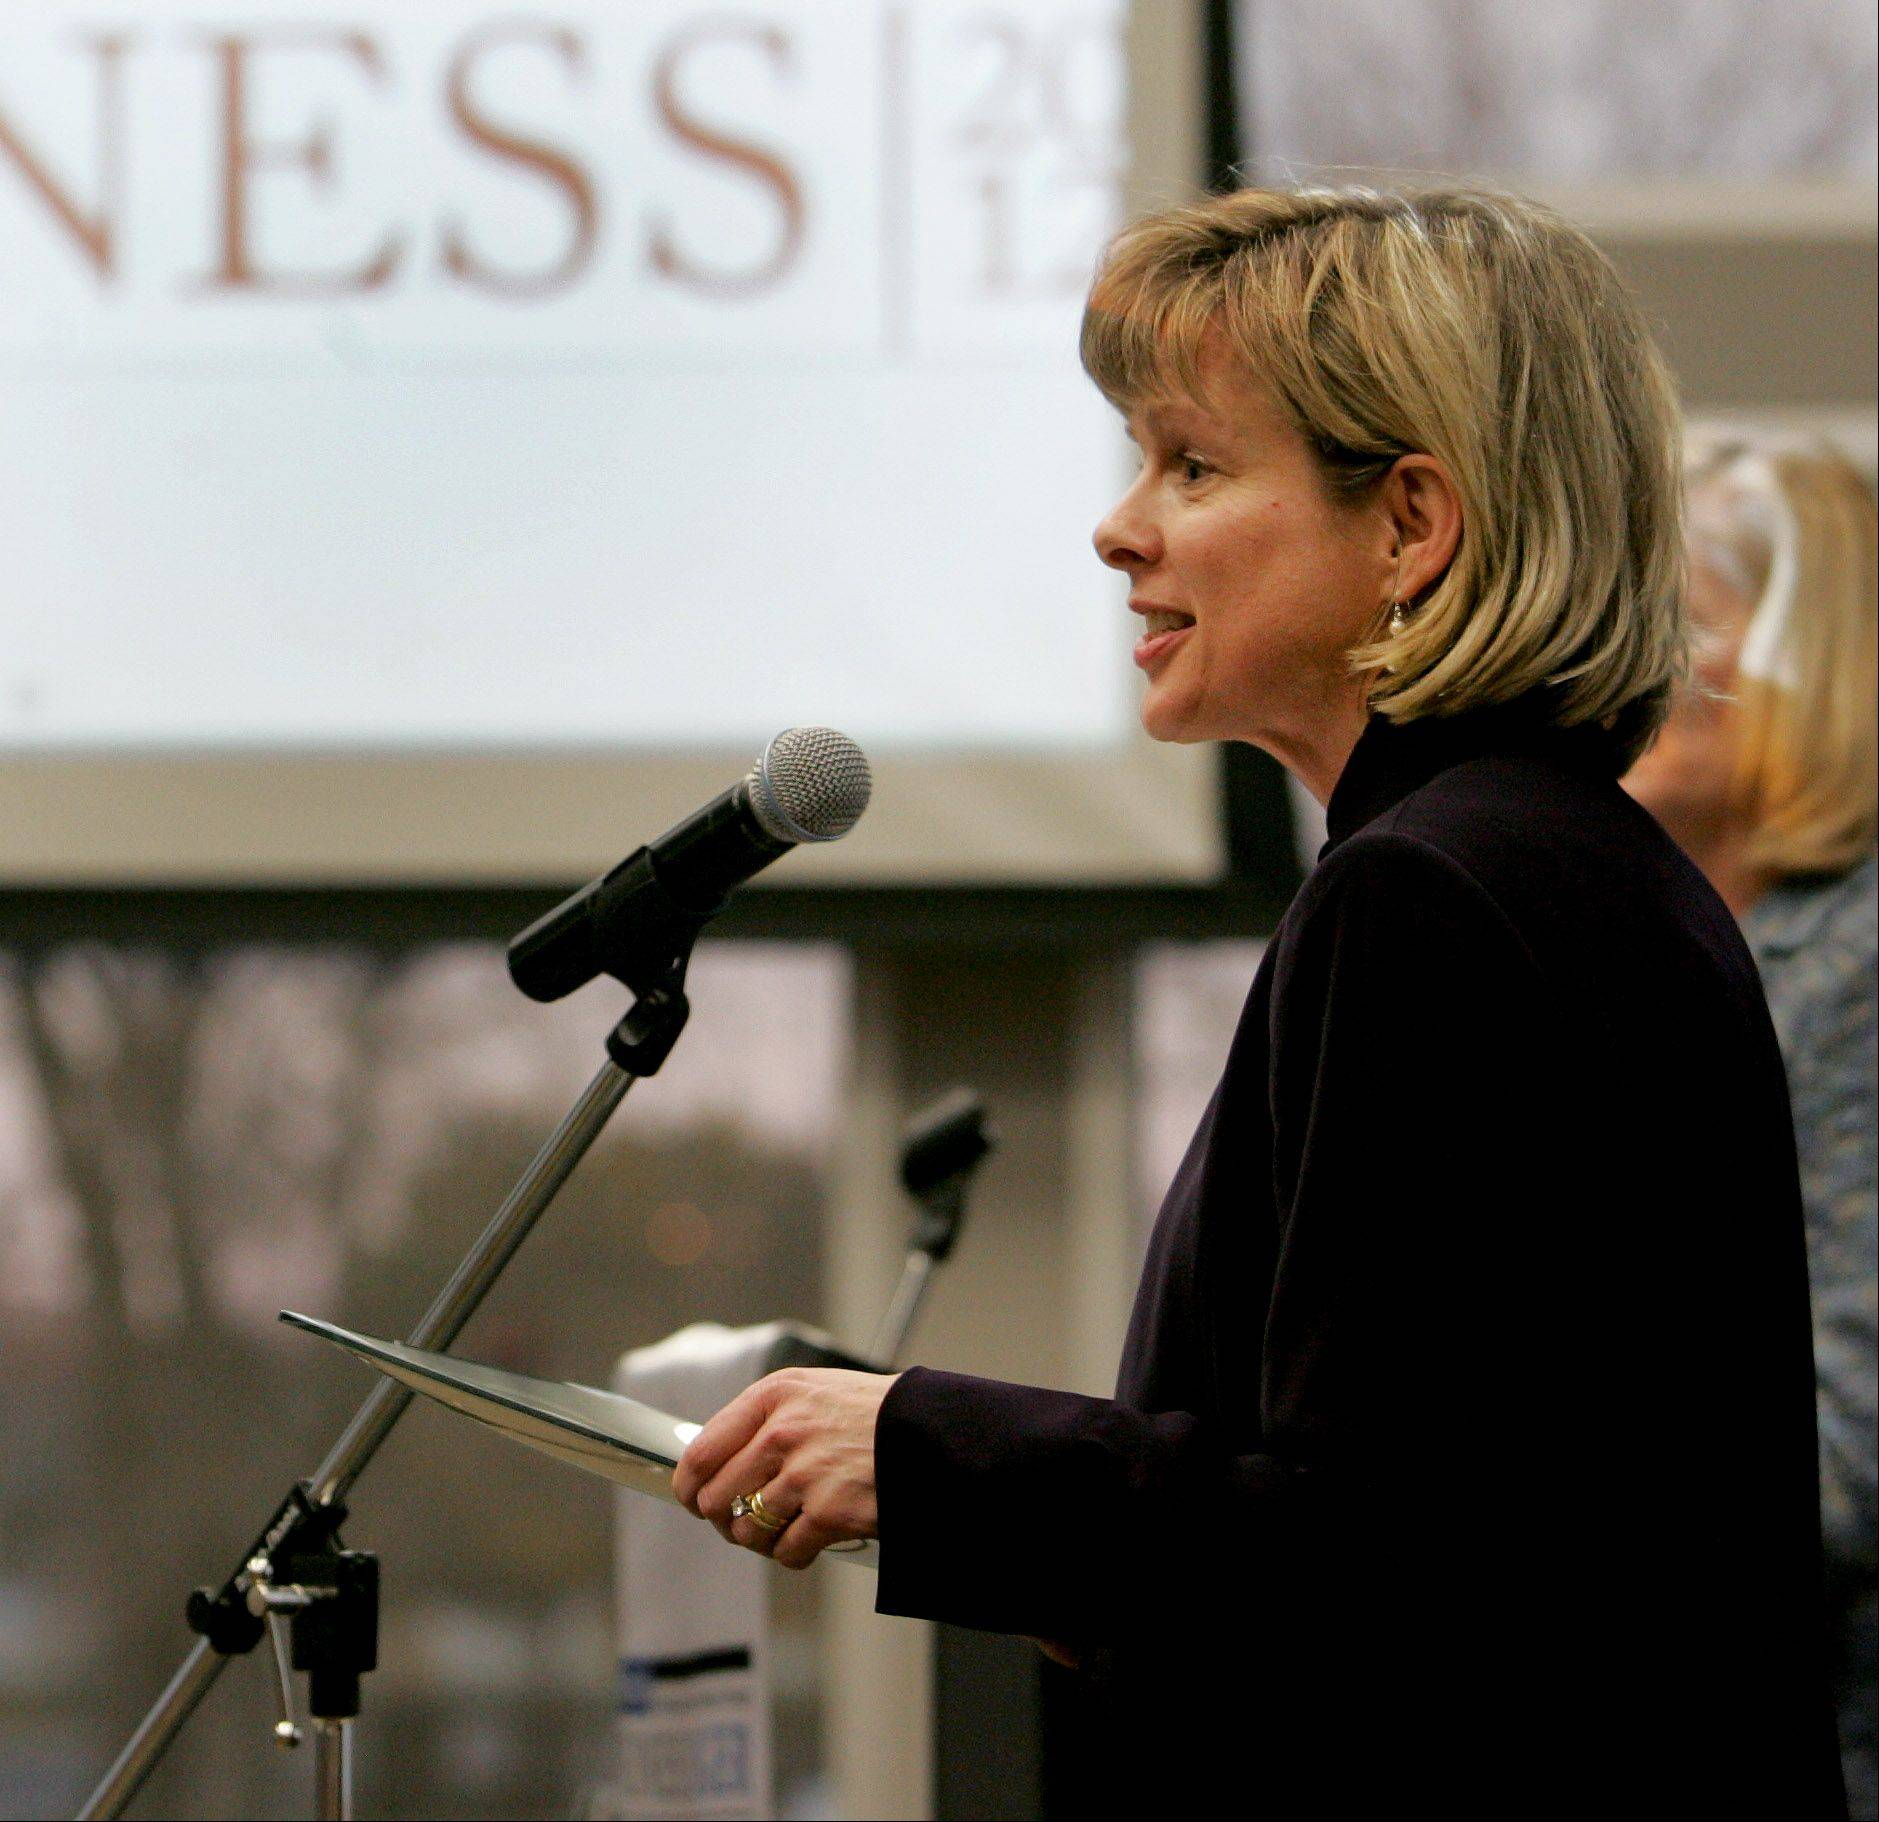 Bev Horne/bhorne@dailyherald.com Kimberly Coogan, founder and partner, Bellock & Coogan Ltd., accepts her Influential Women in Business award at Northern Illinois University Naperville campus on Monday.